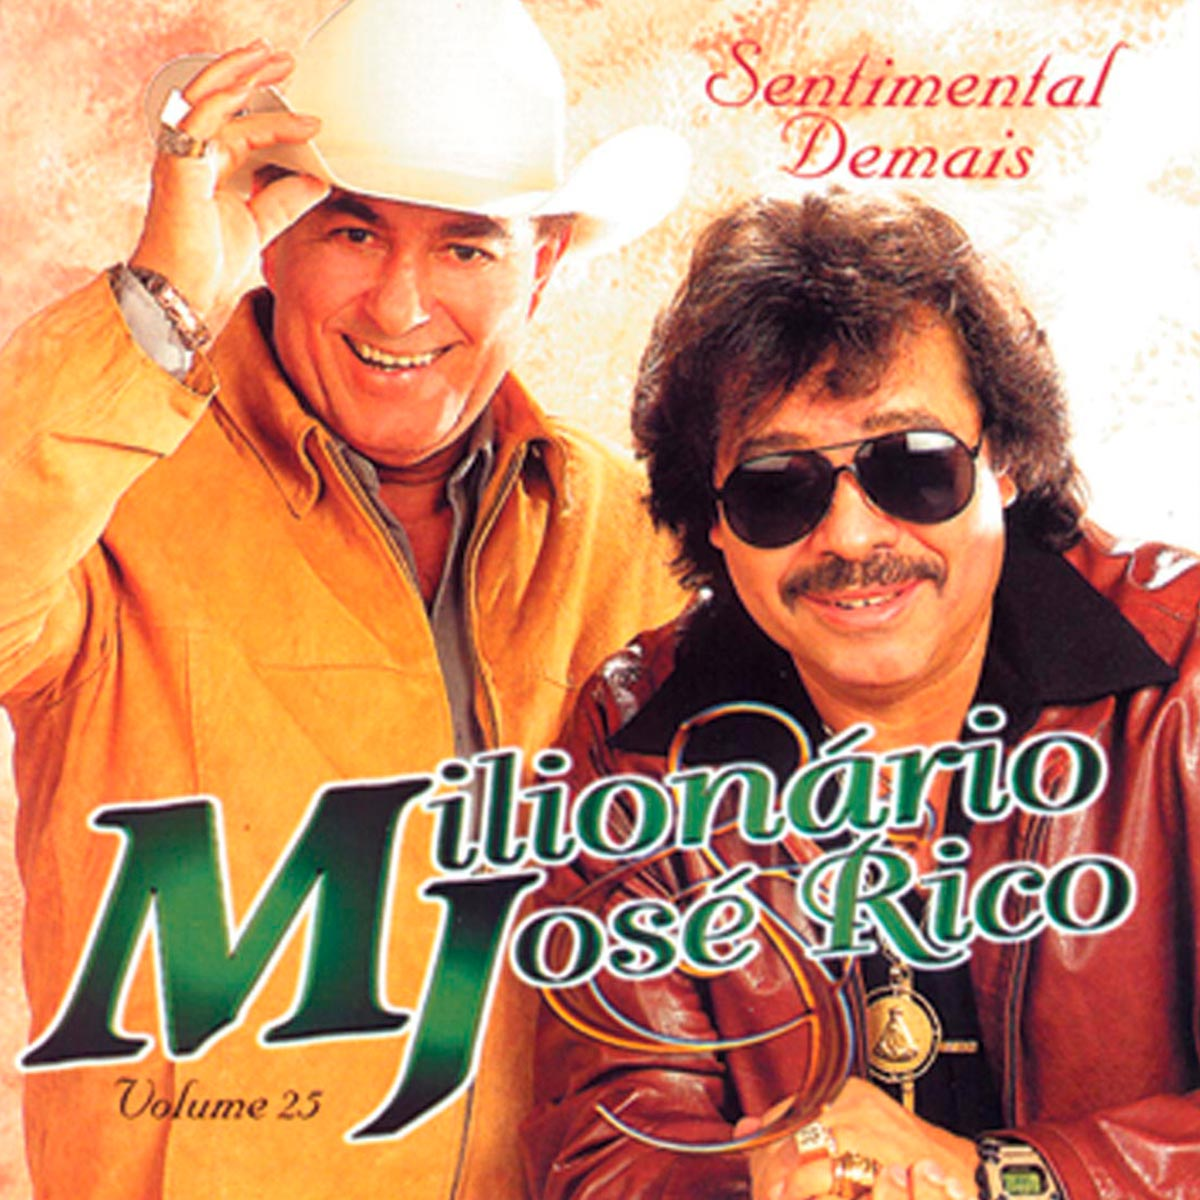 CD Milionário & José Rico Sentimental Demais Volume 25